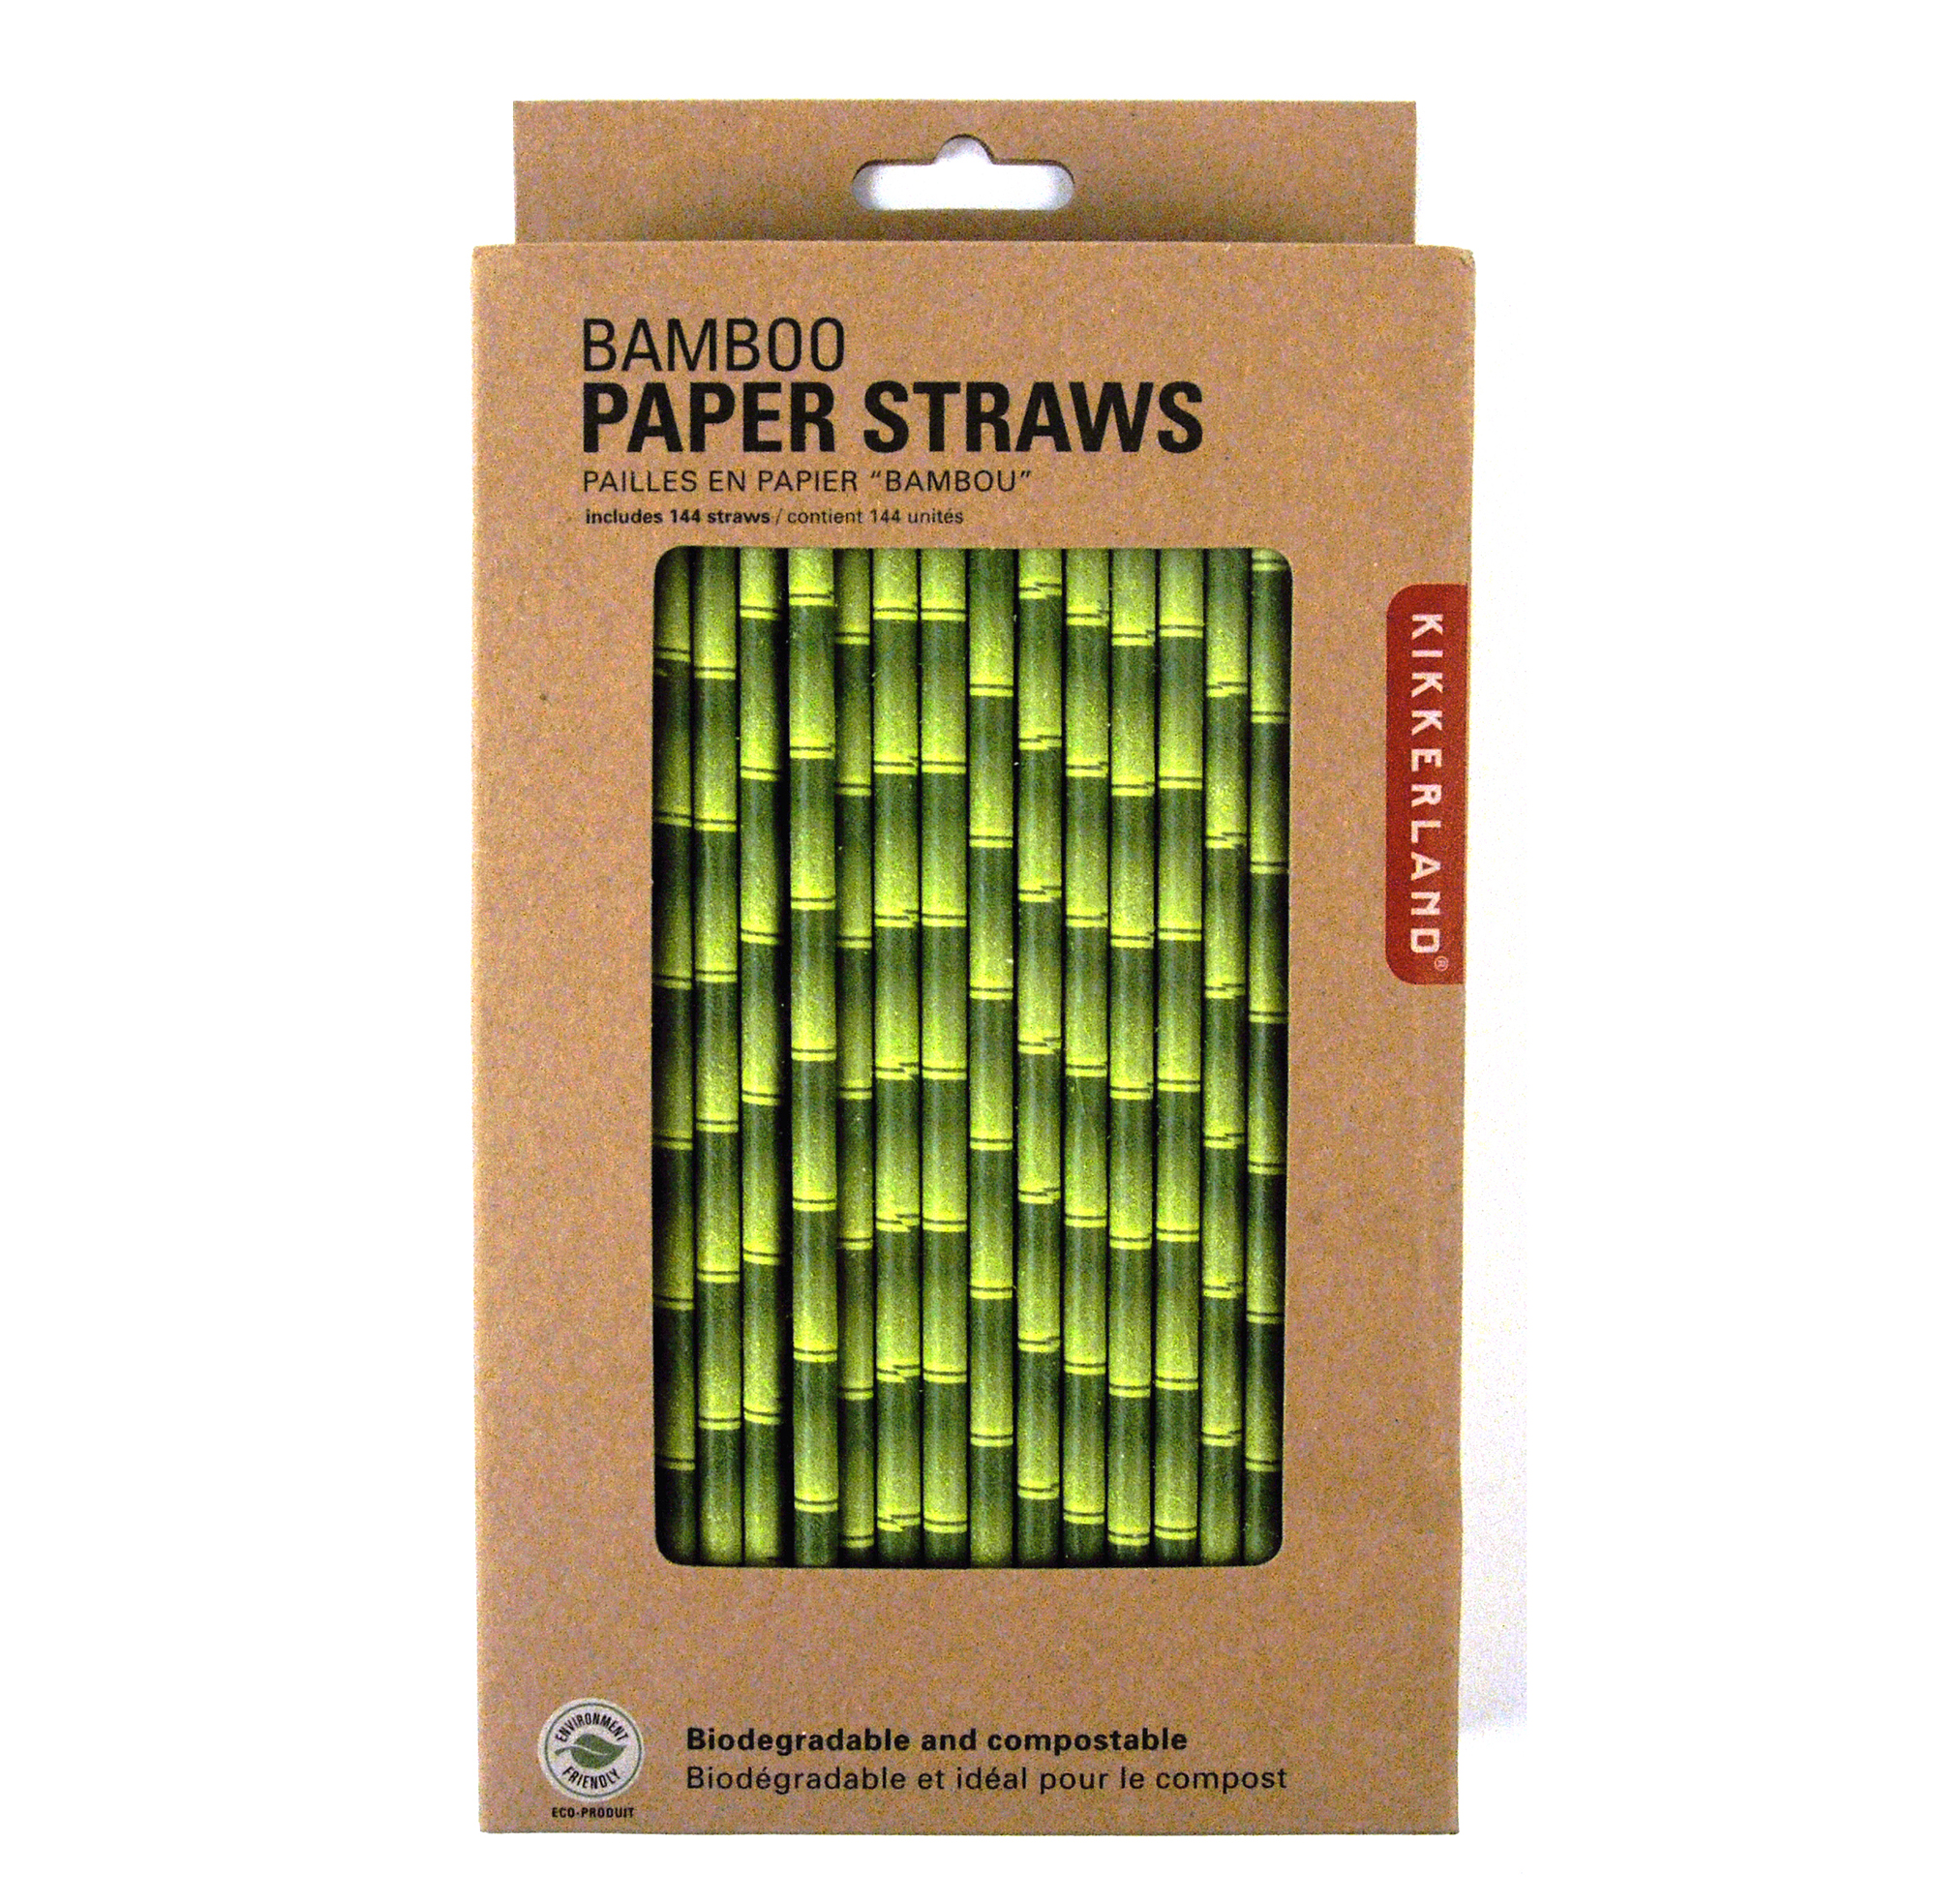 Paper Bamboo Straws Bamboo Paper Straws